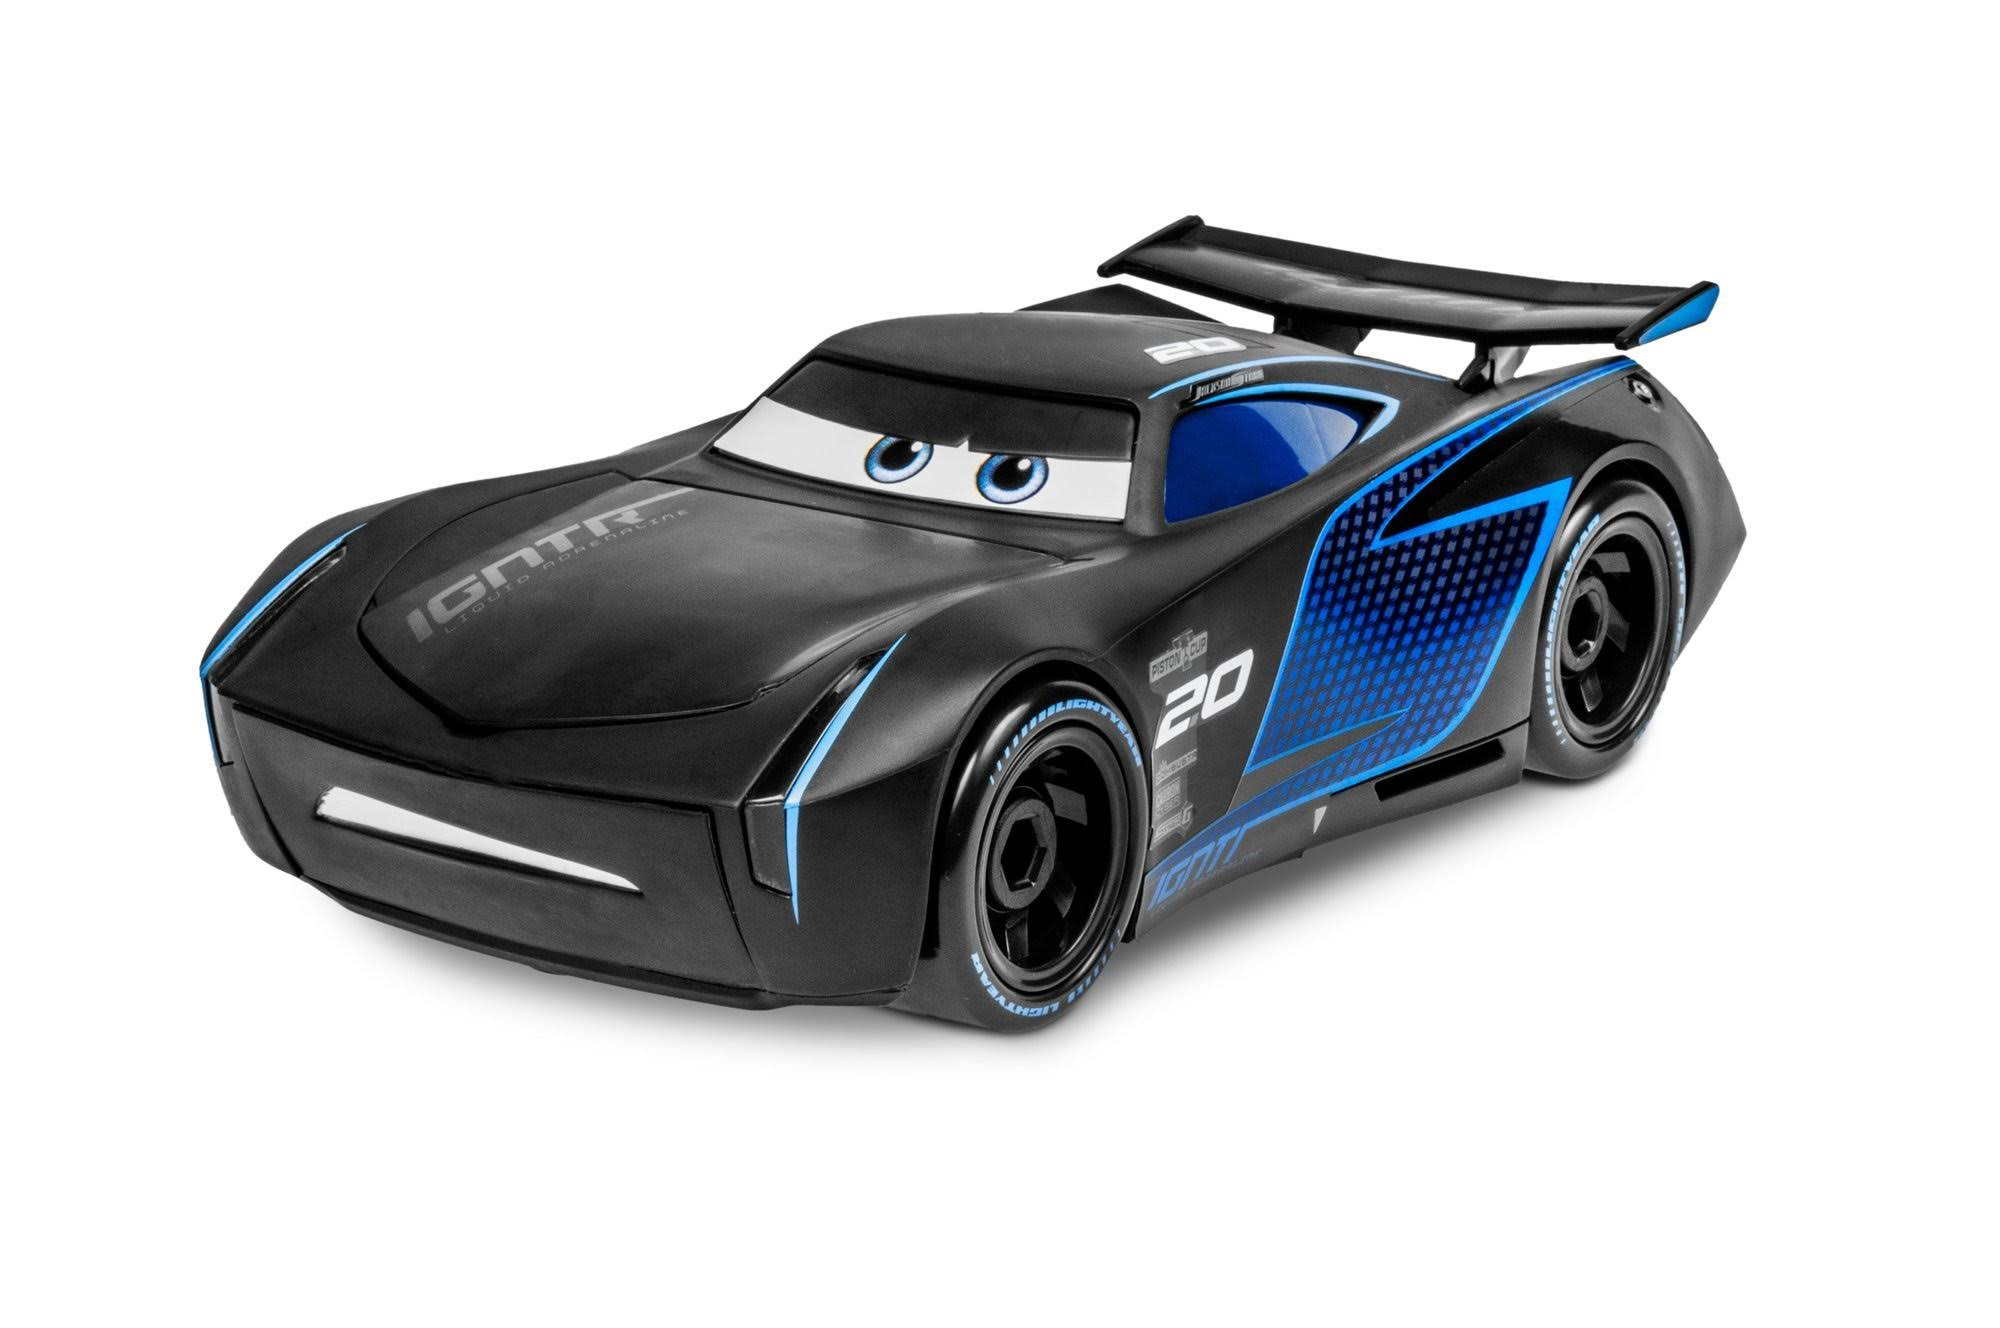 Revell 451502 Disney Cars 3 Toy Car - Jackson Storm